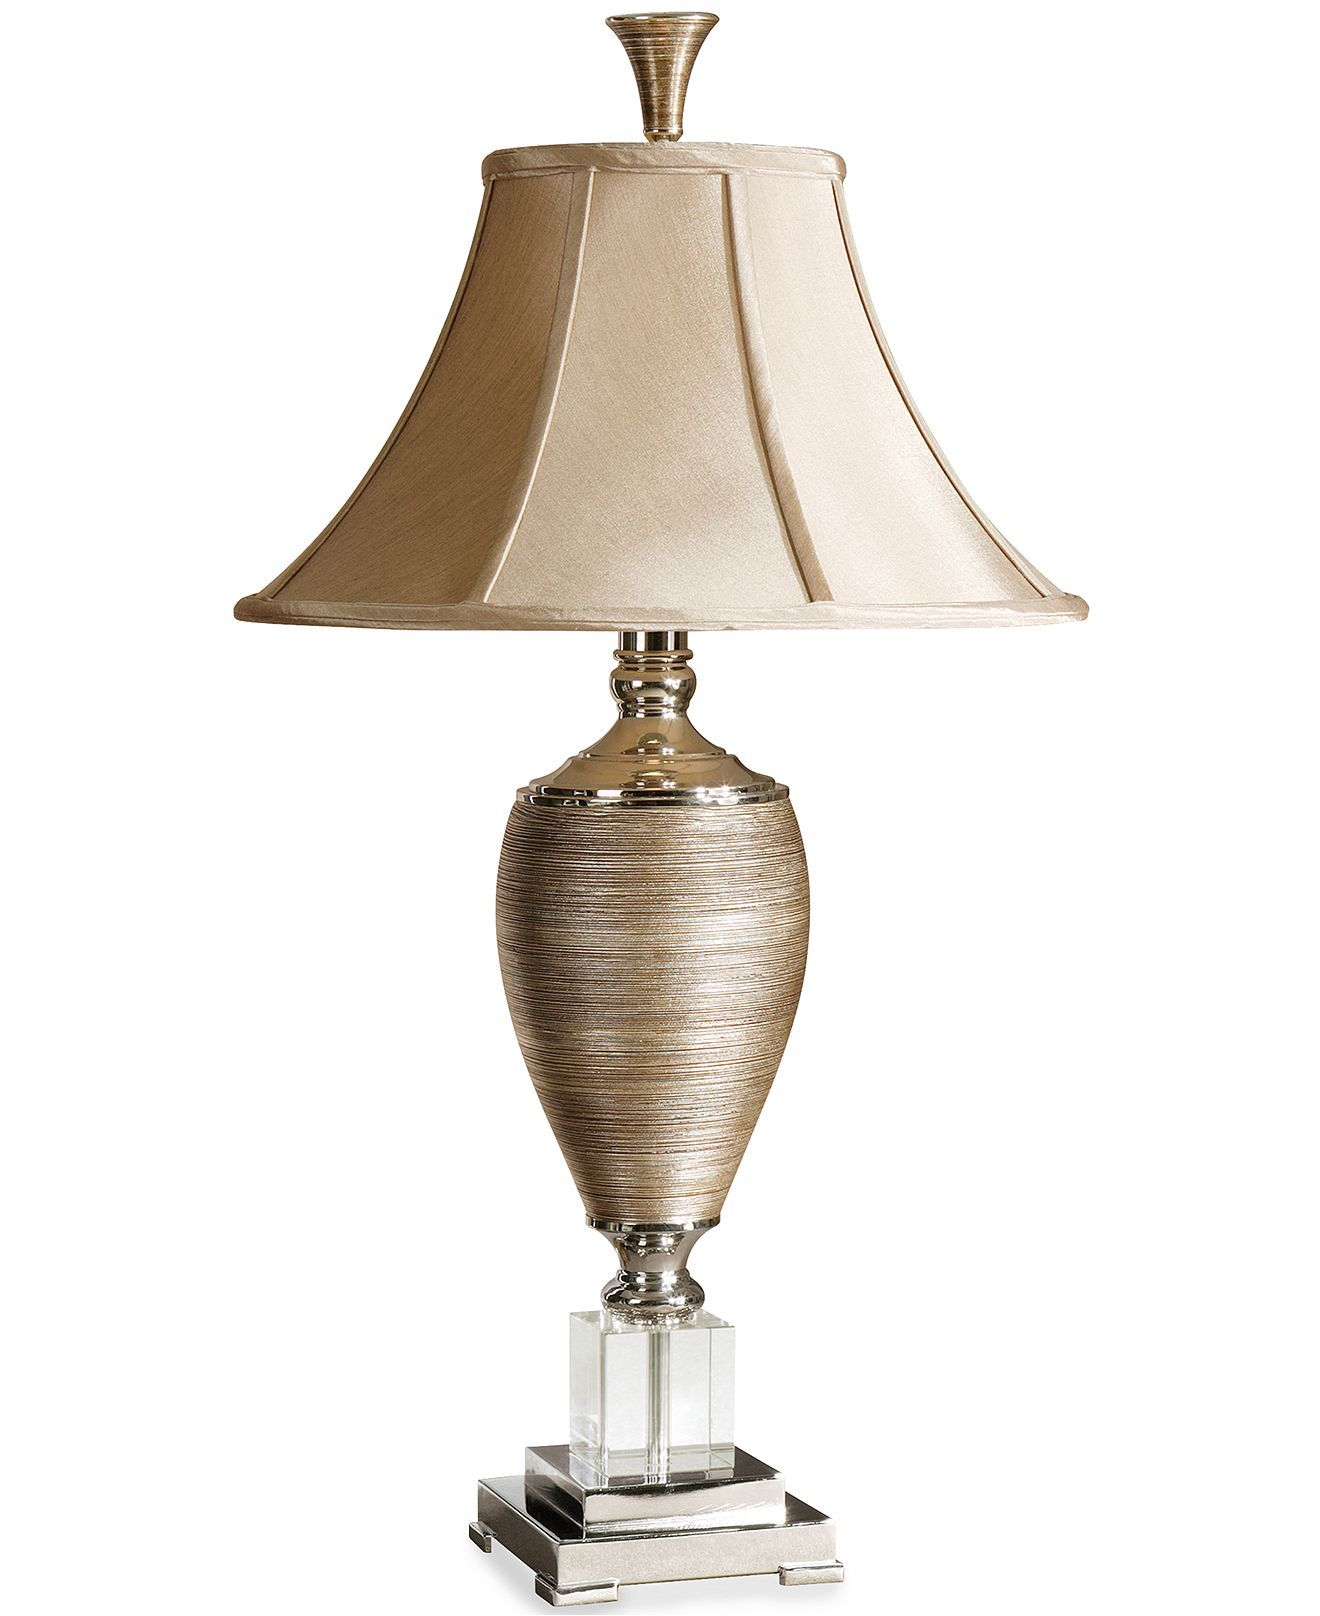 Abriella Table Lamp Let There Be Light Contemporary